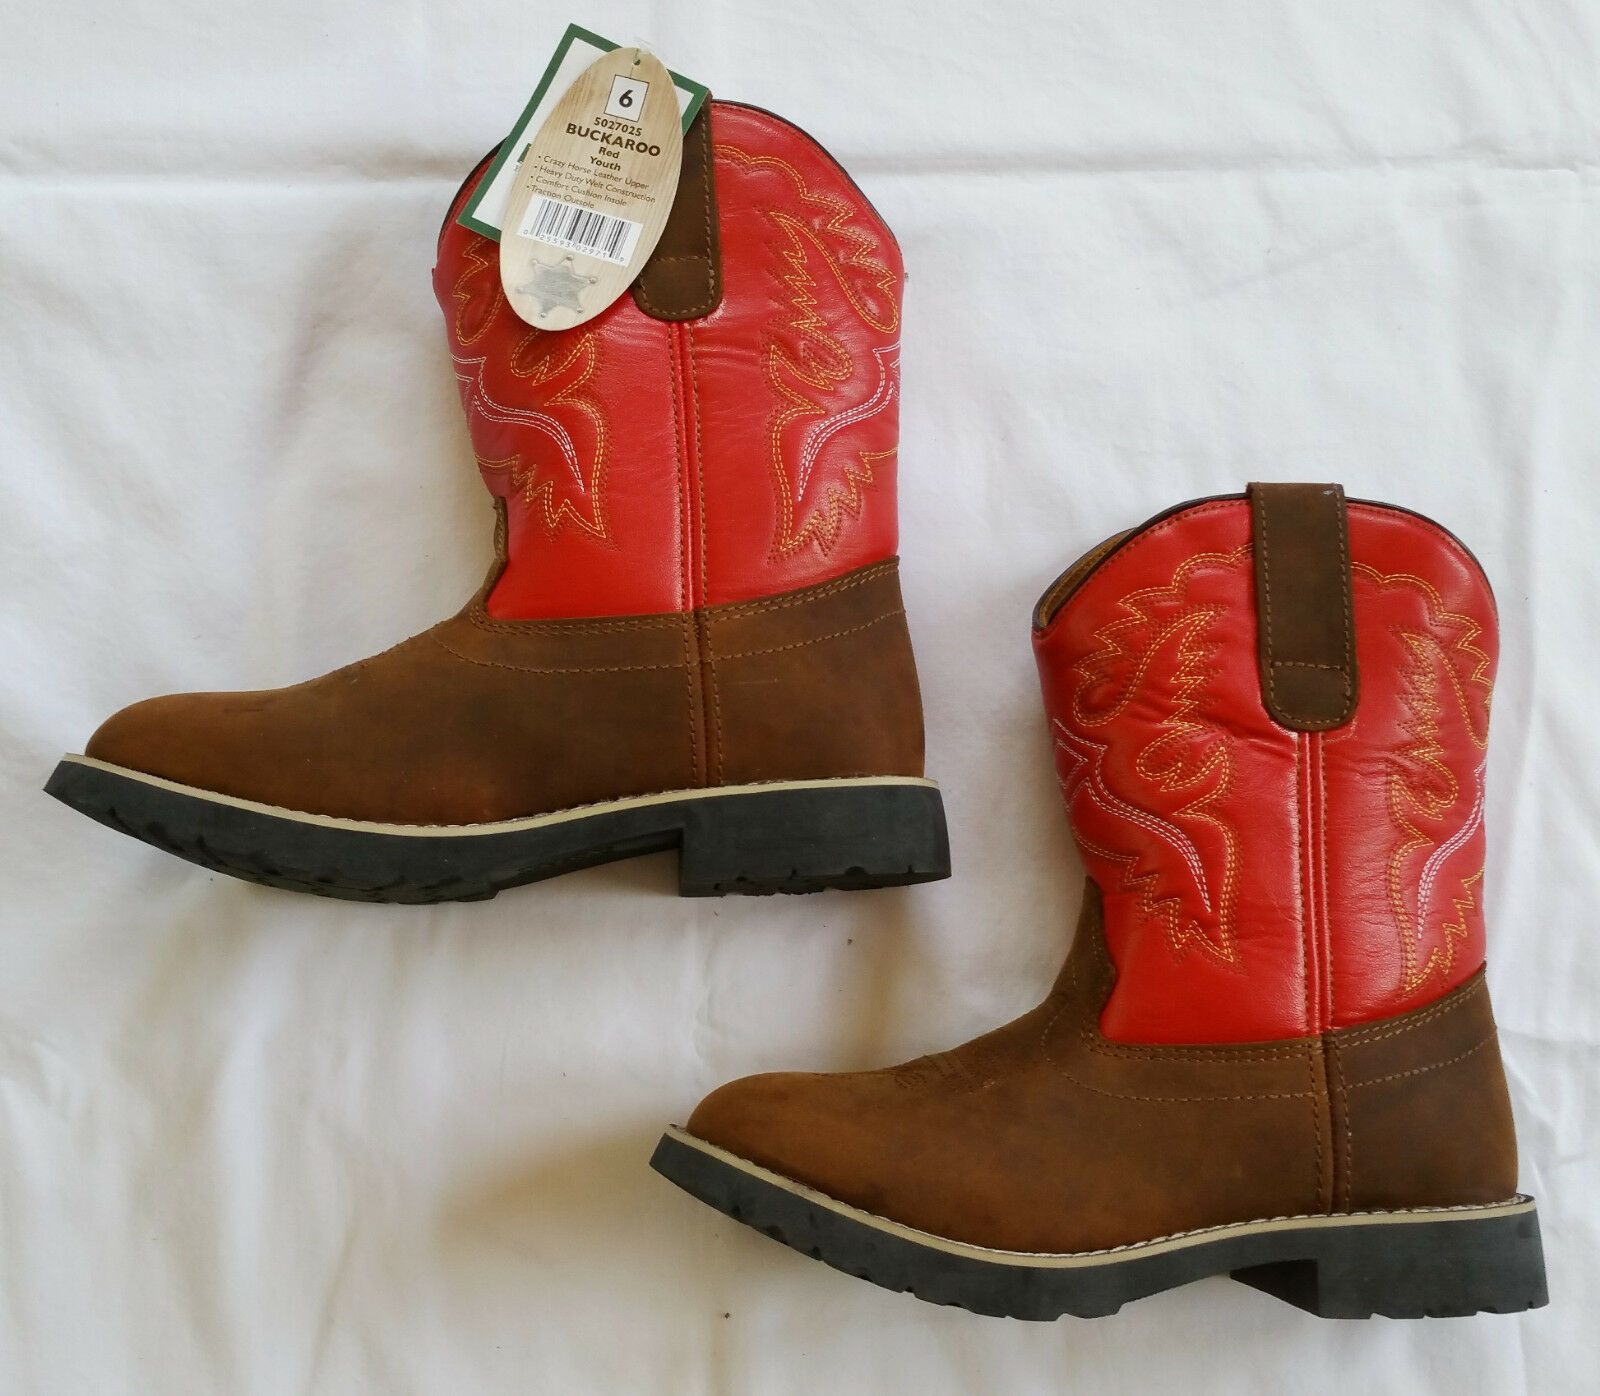 youth size 6 boots